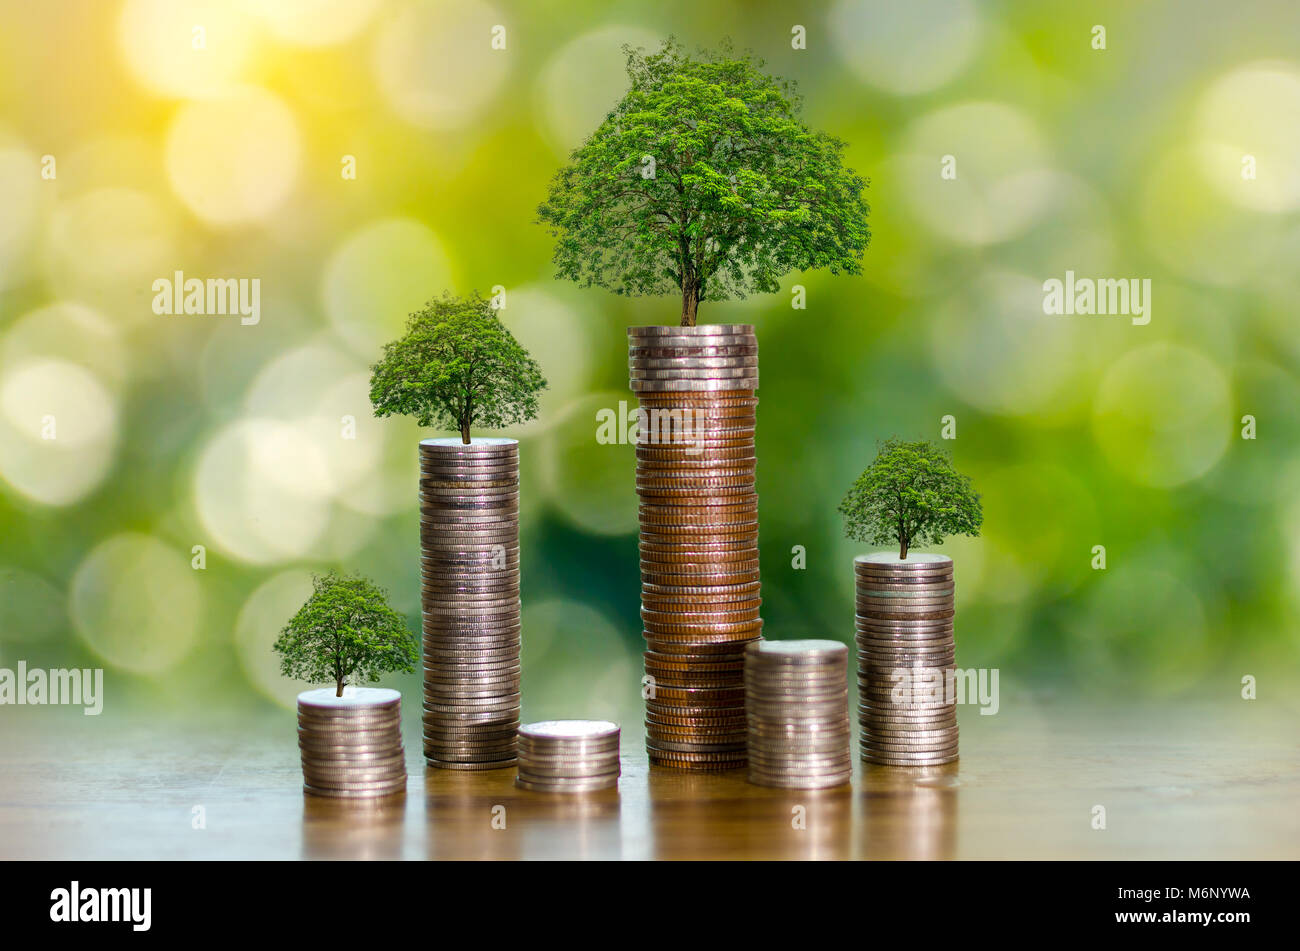 hand Coin tree The tree grows on the pile. Saving money for the future. Investment Ideas and Business Growth. Green - Stock Image